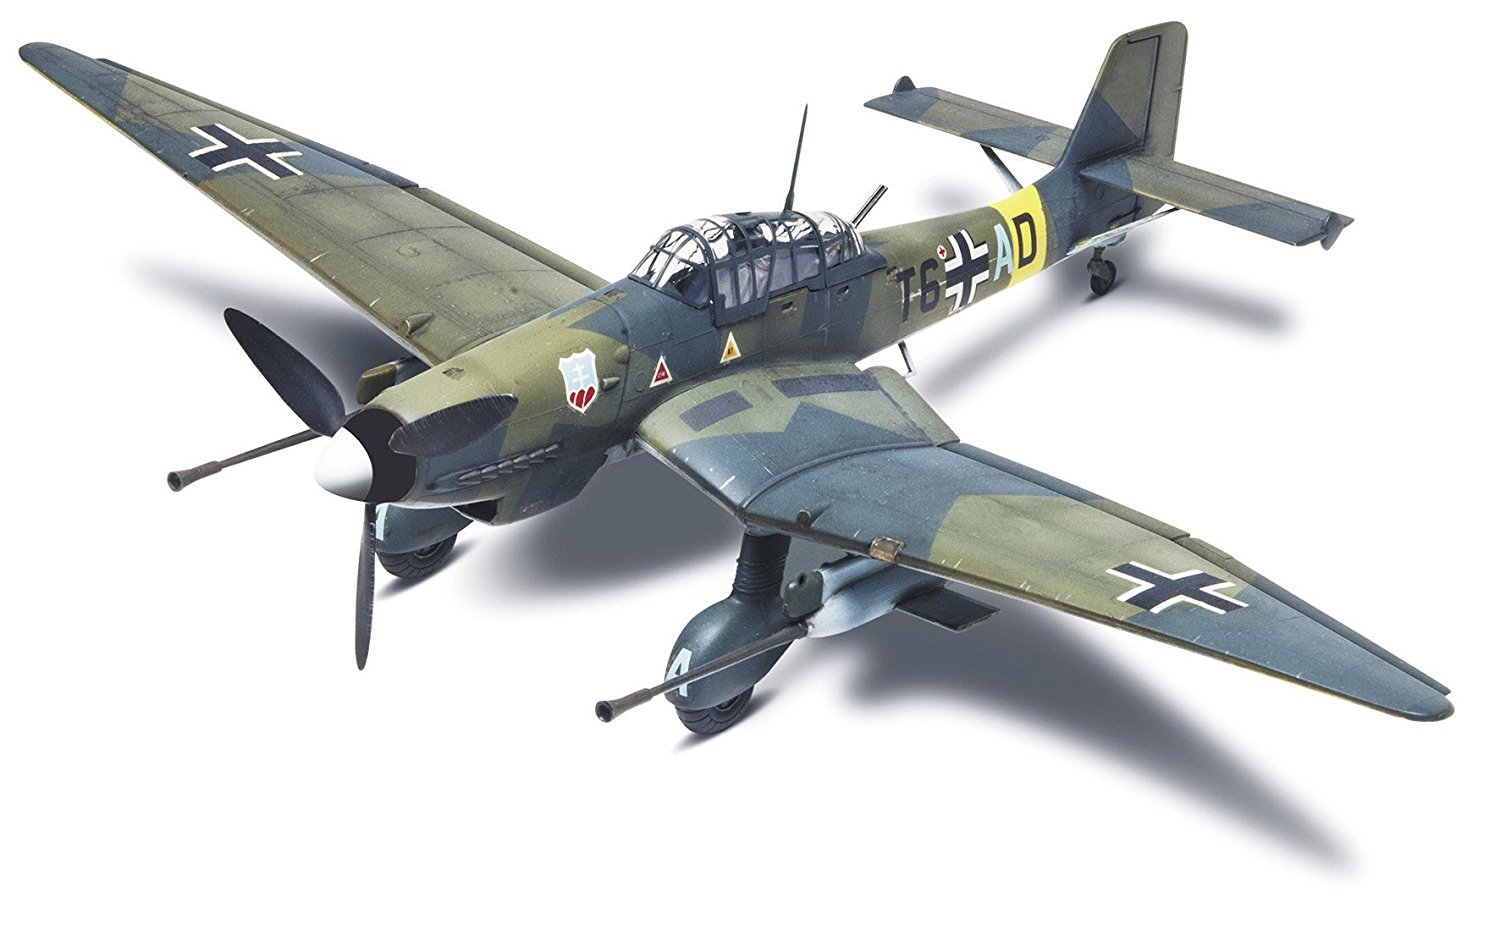 Stuka Ju 87G-1 Tank Buster Plastic Model Kit, Add this WW II dive bomber to your... by